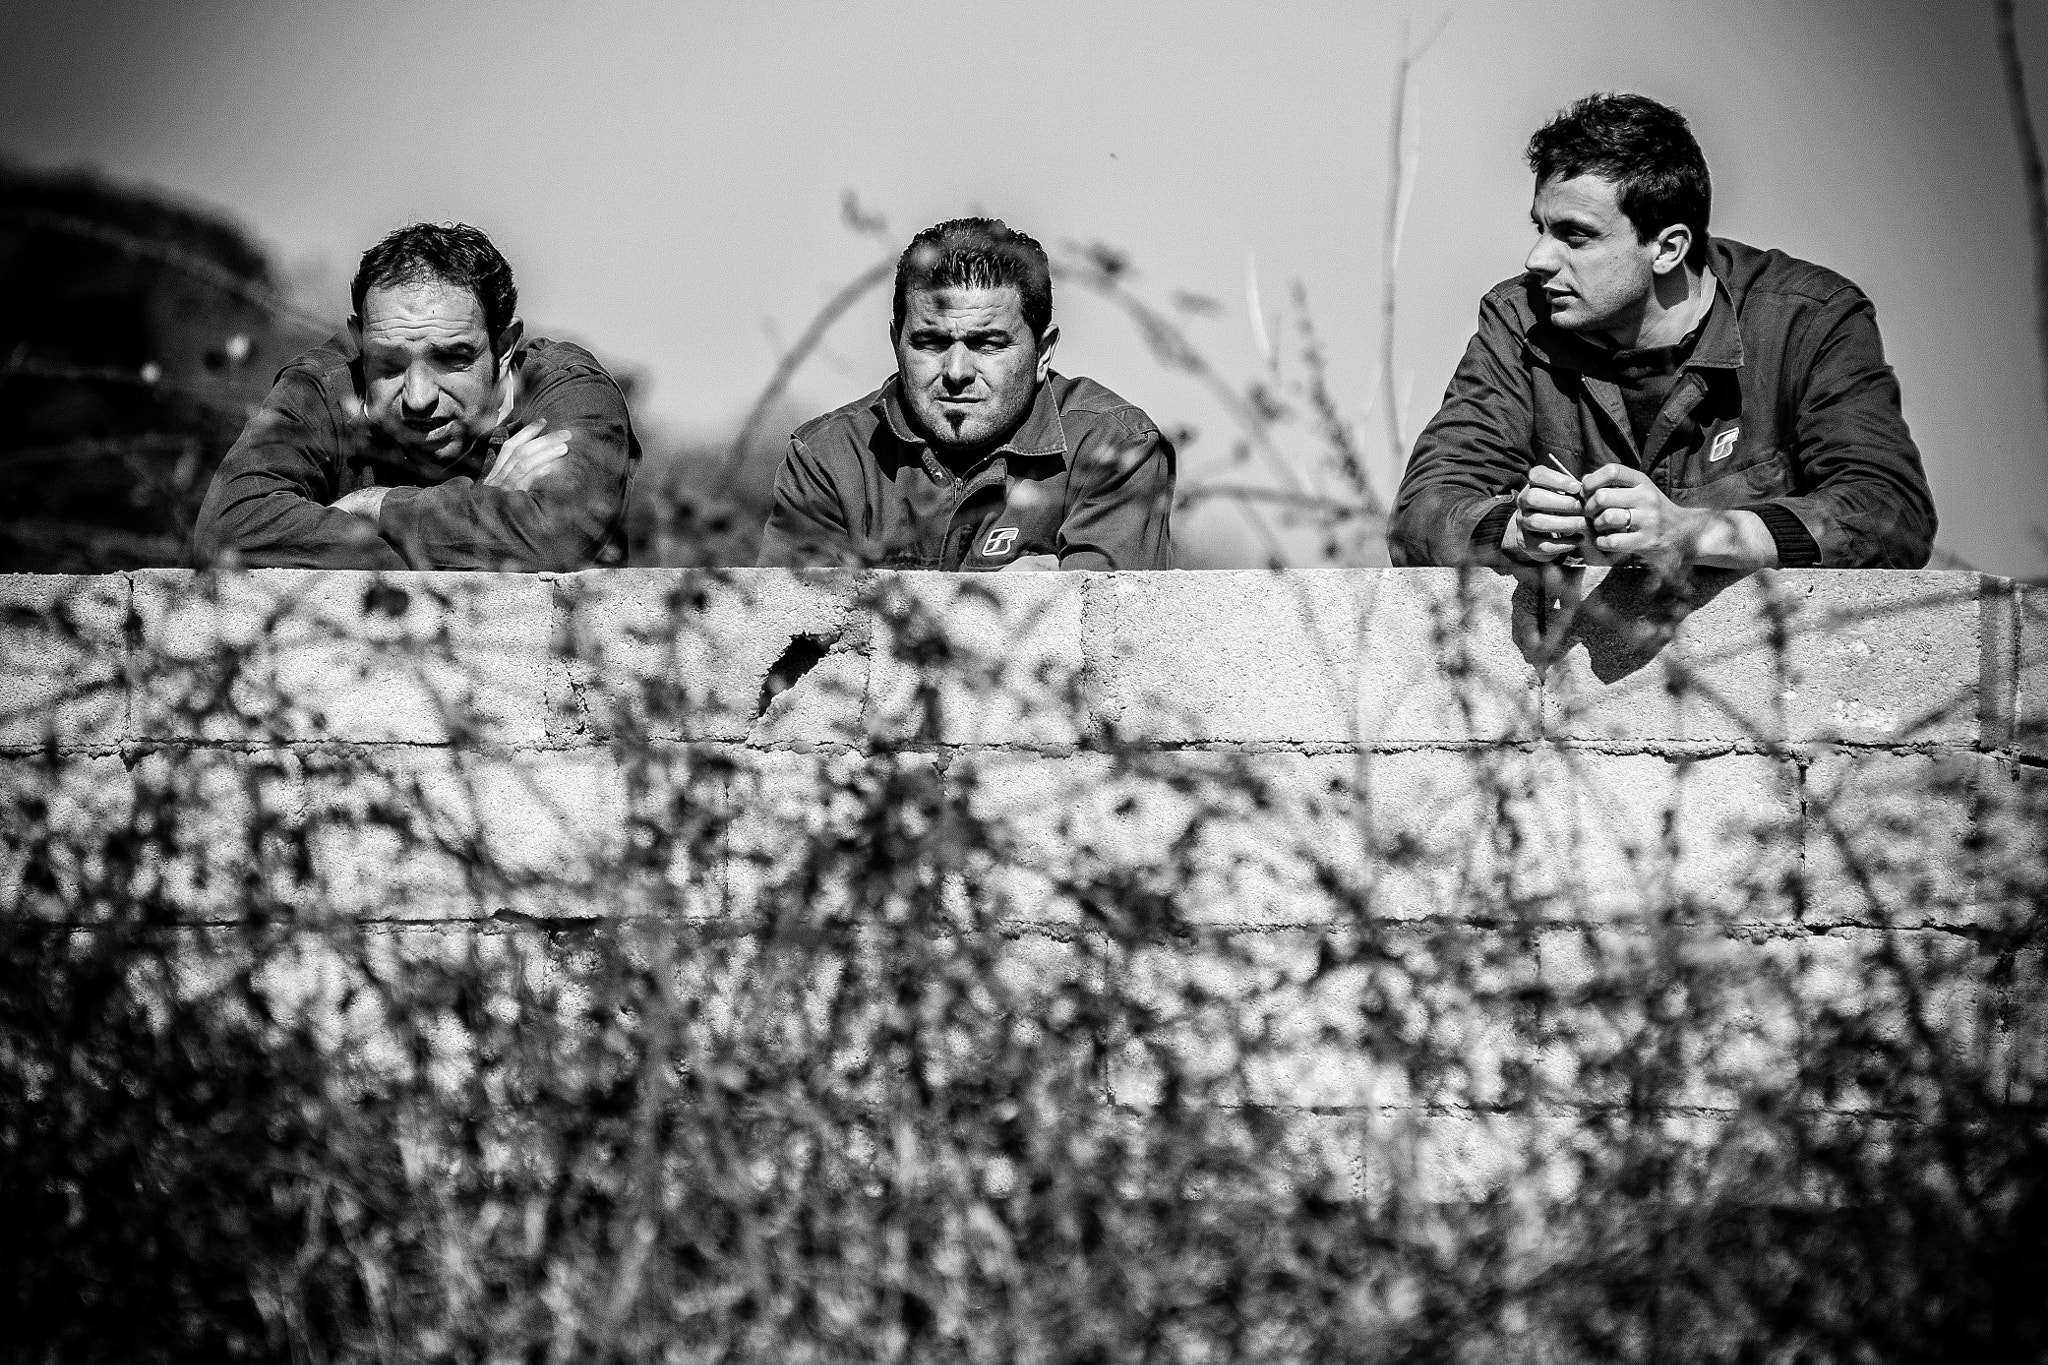 Photograph Pensieri by filippo mastrantoni on 500px